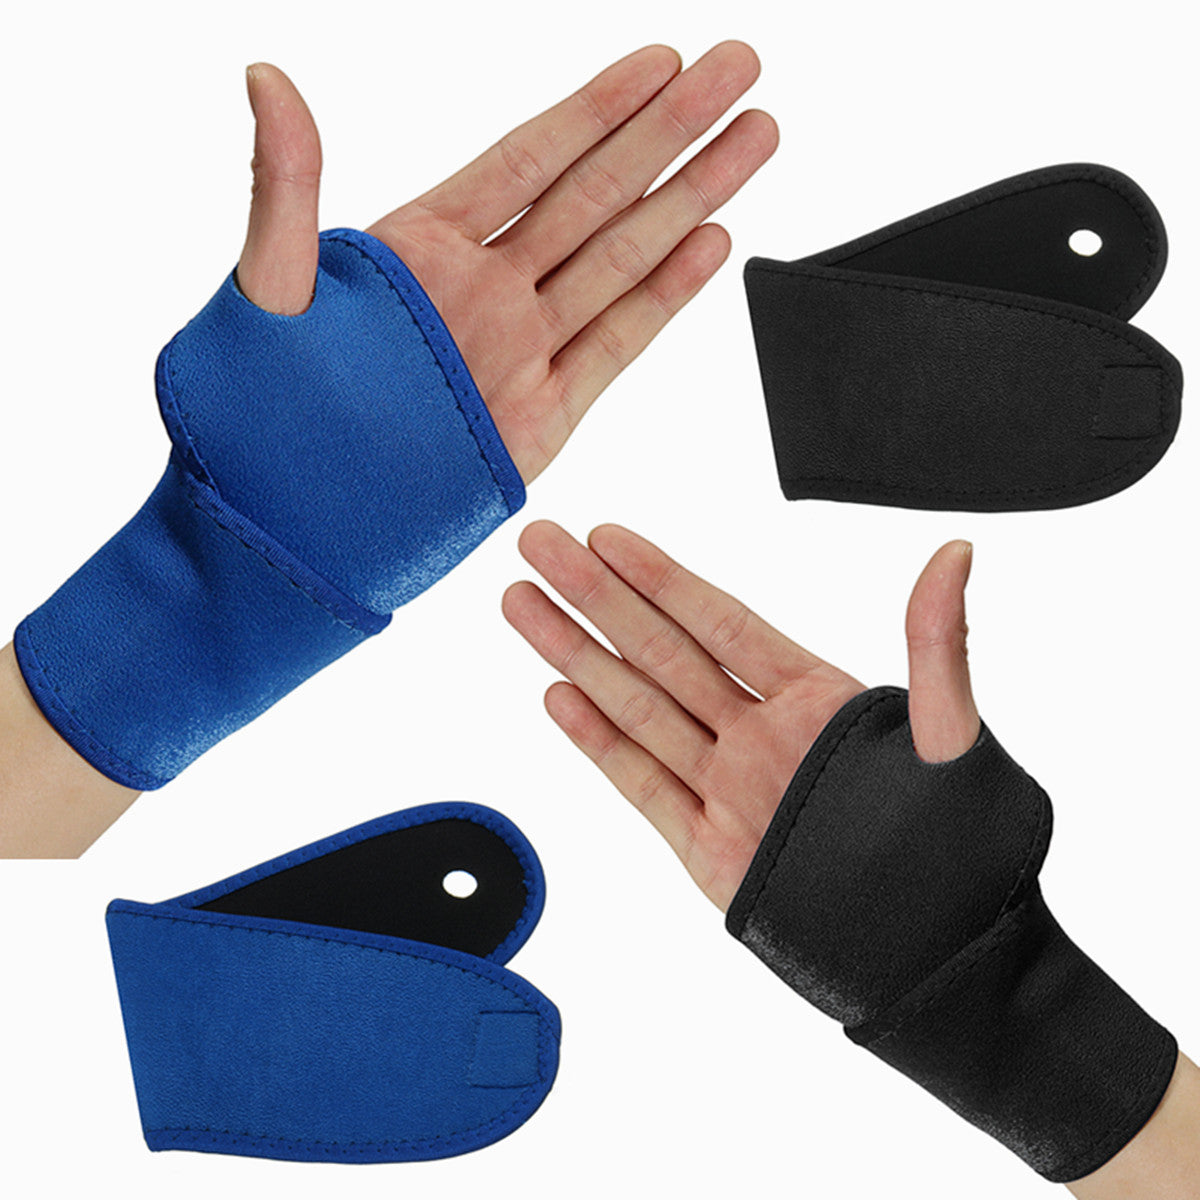 Wil je alles weten over Sports Adjustable Wrist Palm Wrap Guard Band Neoprene Brace Support Gym Sprain Strain Strap? Hier lees je alles over Sports Protective Gear